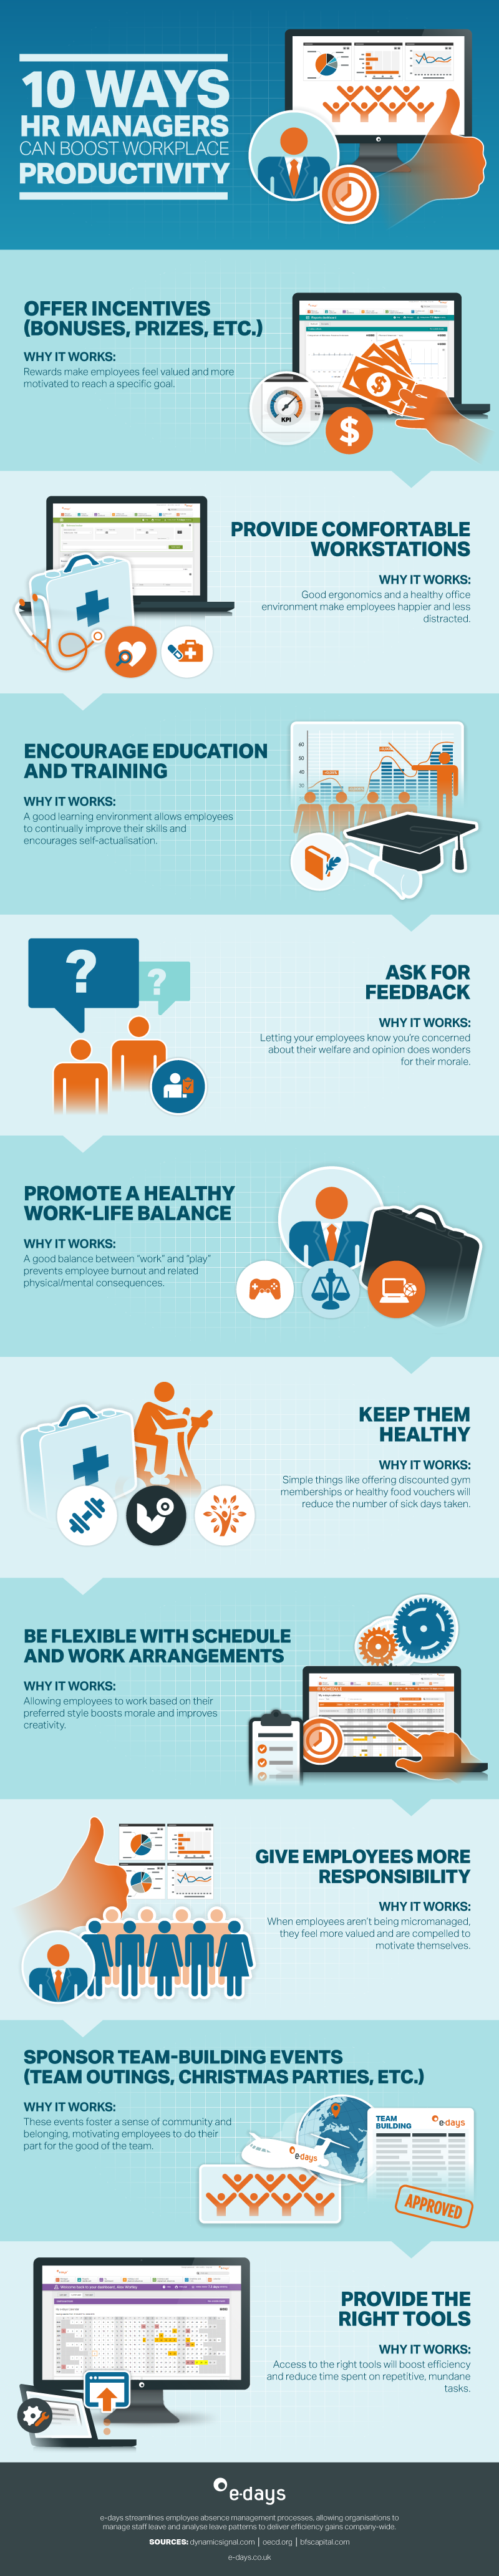 10 HR Tips to Enhance Workplace Productivity - Infographic